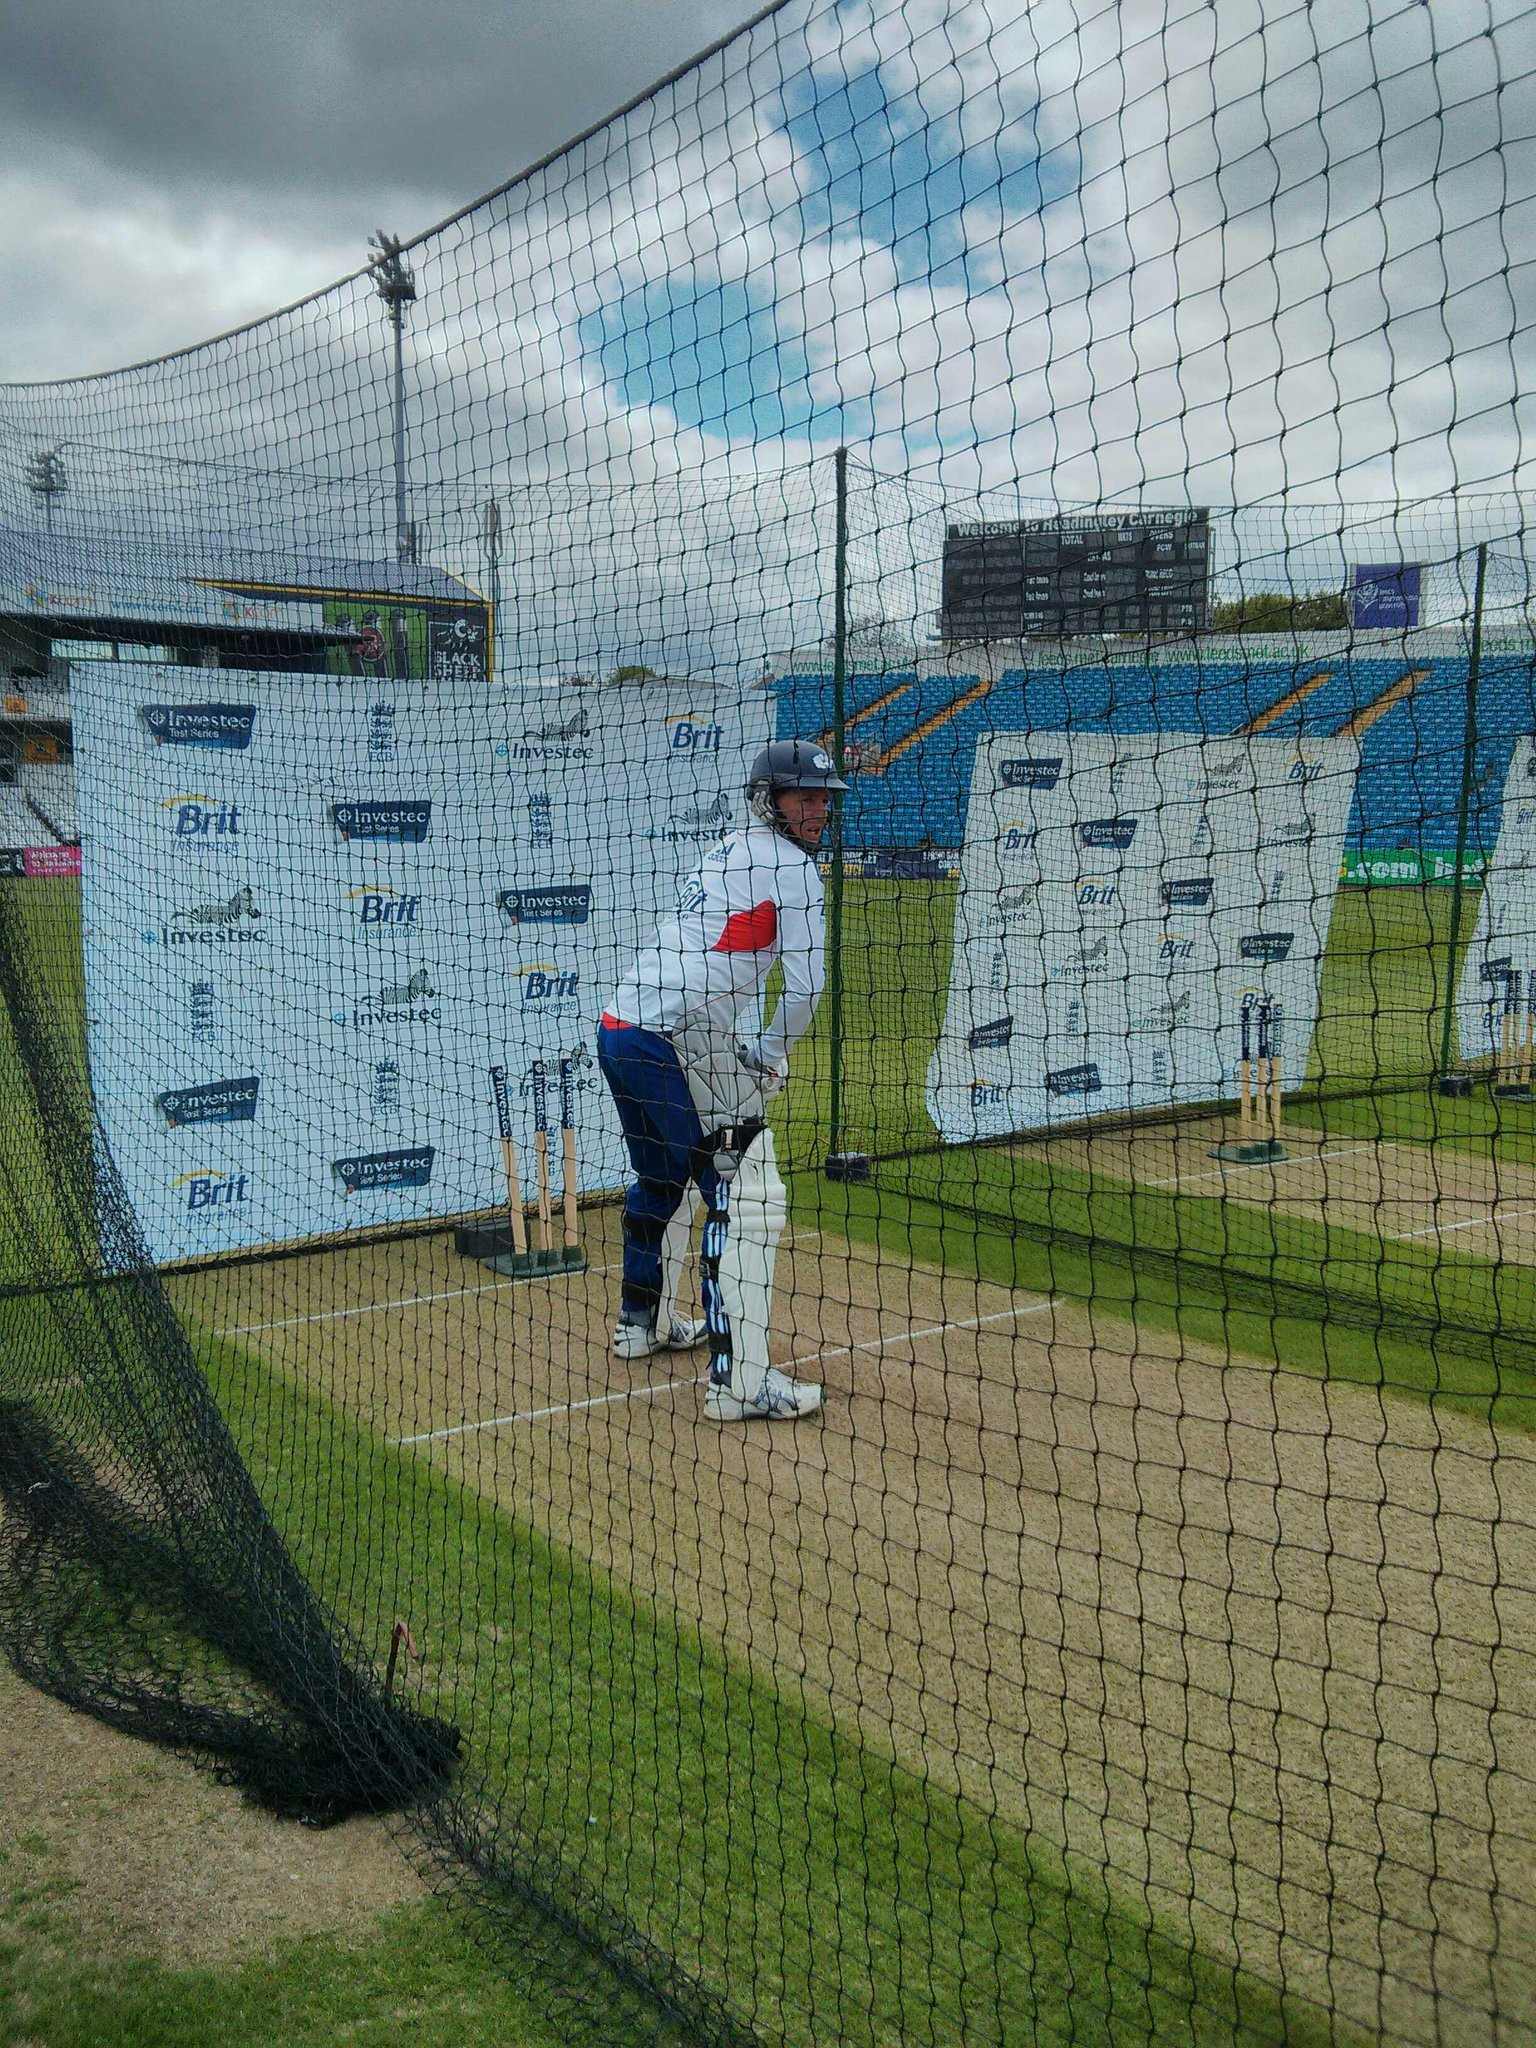 Gary Ballance will do some 1-2-1 batting with Graham Gooch. Yorks dominating England. Great talent. http://t.co/NoXtOuQzvj